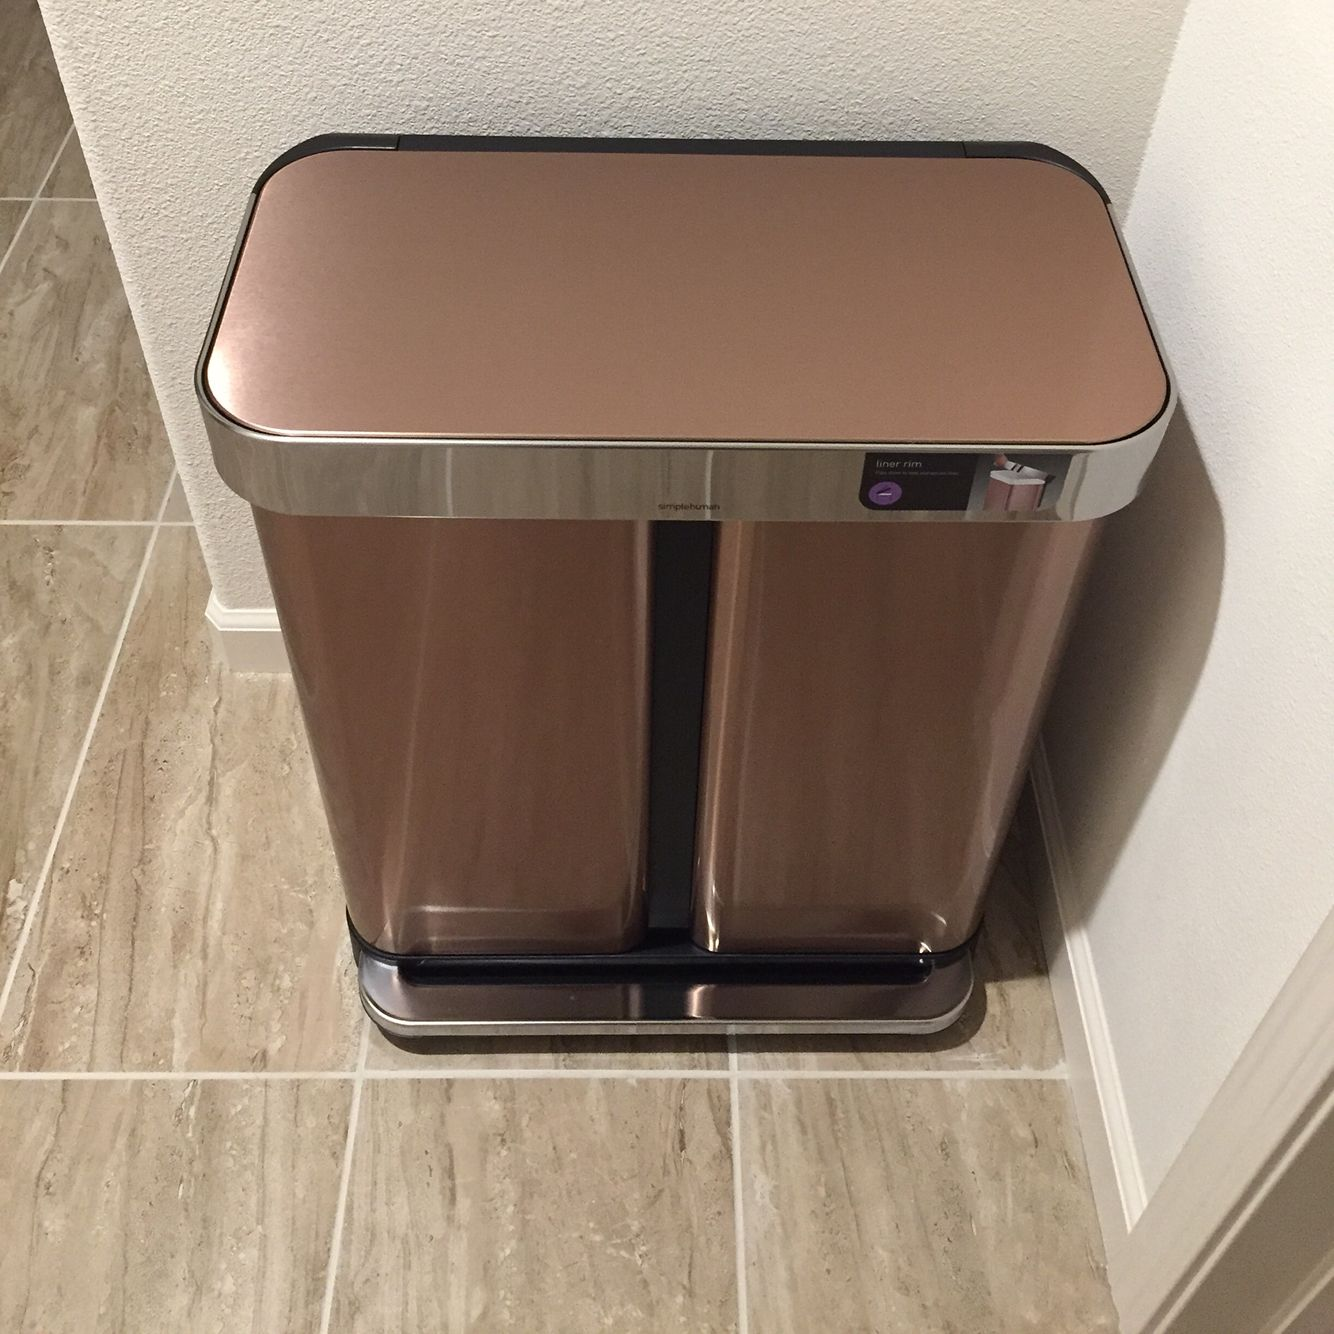 Rose Gold Trash Can From Simple Human Trash Can Simplehuman